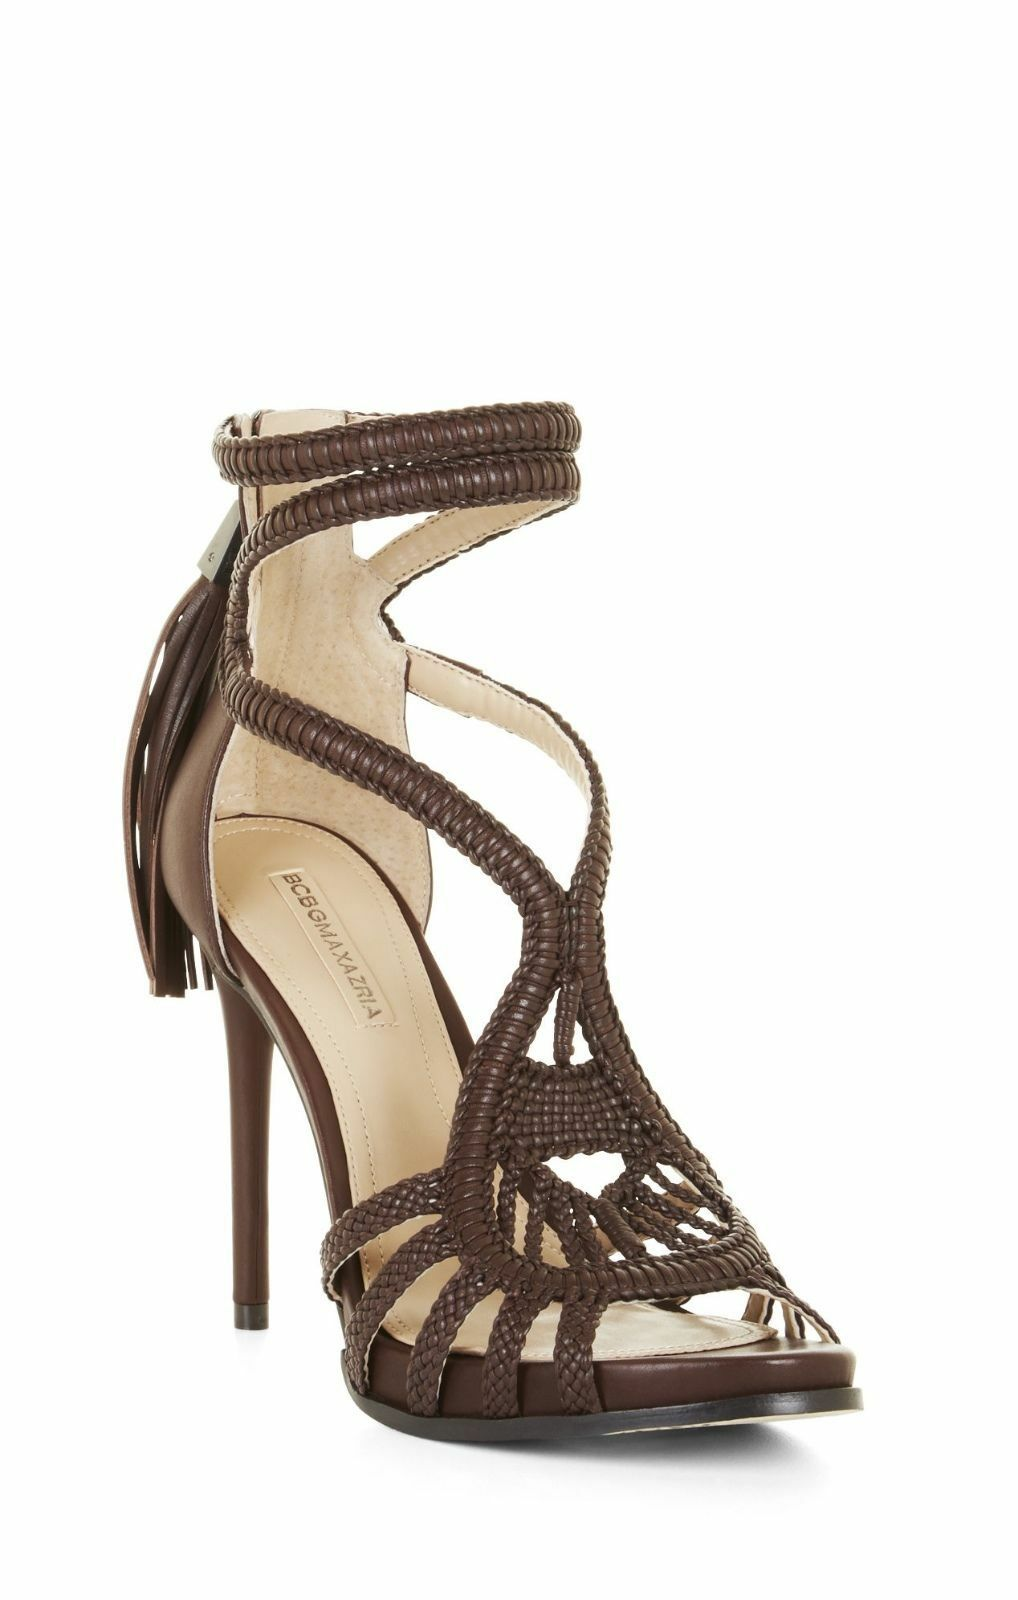 BCBG MAX AZRIA ESH HEEL MAPLE WOVEN LEATHER HIGH HEEL ESH STRAPPY DESIGNER SAY SANDALS 1149b7